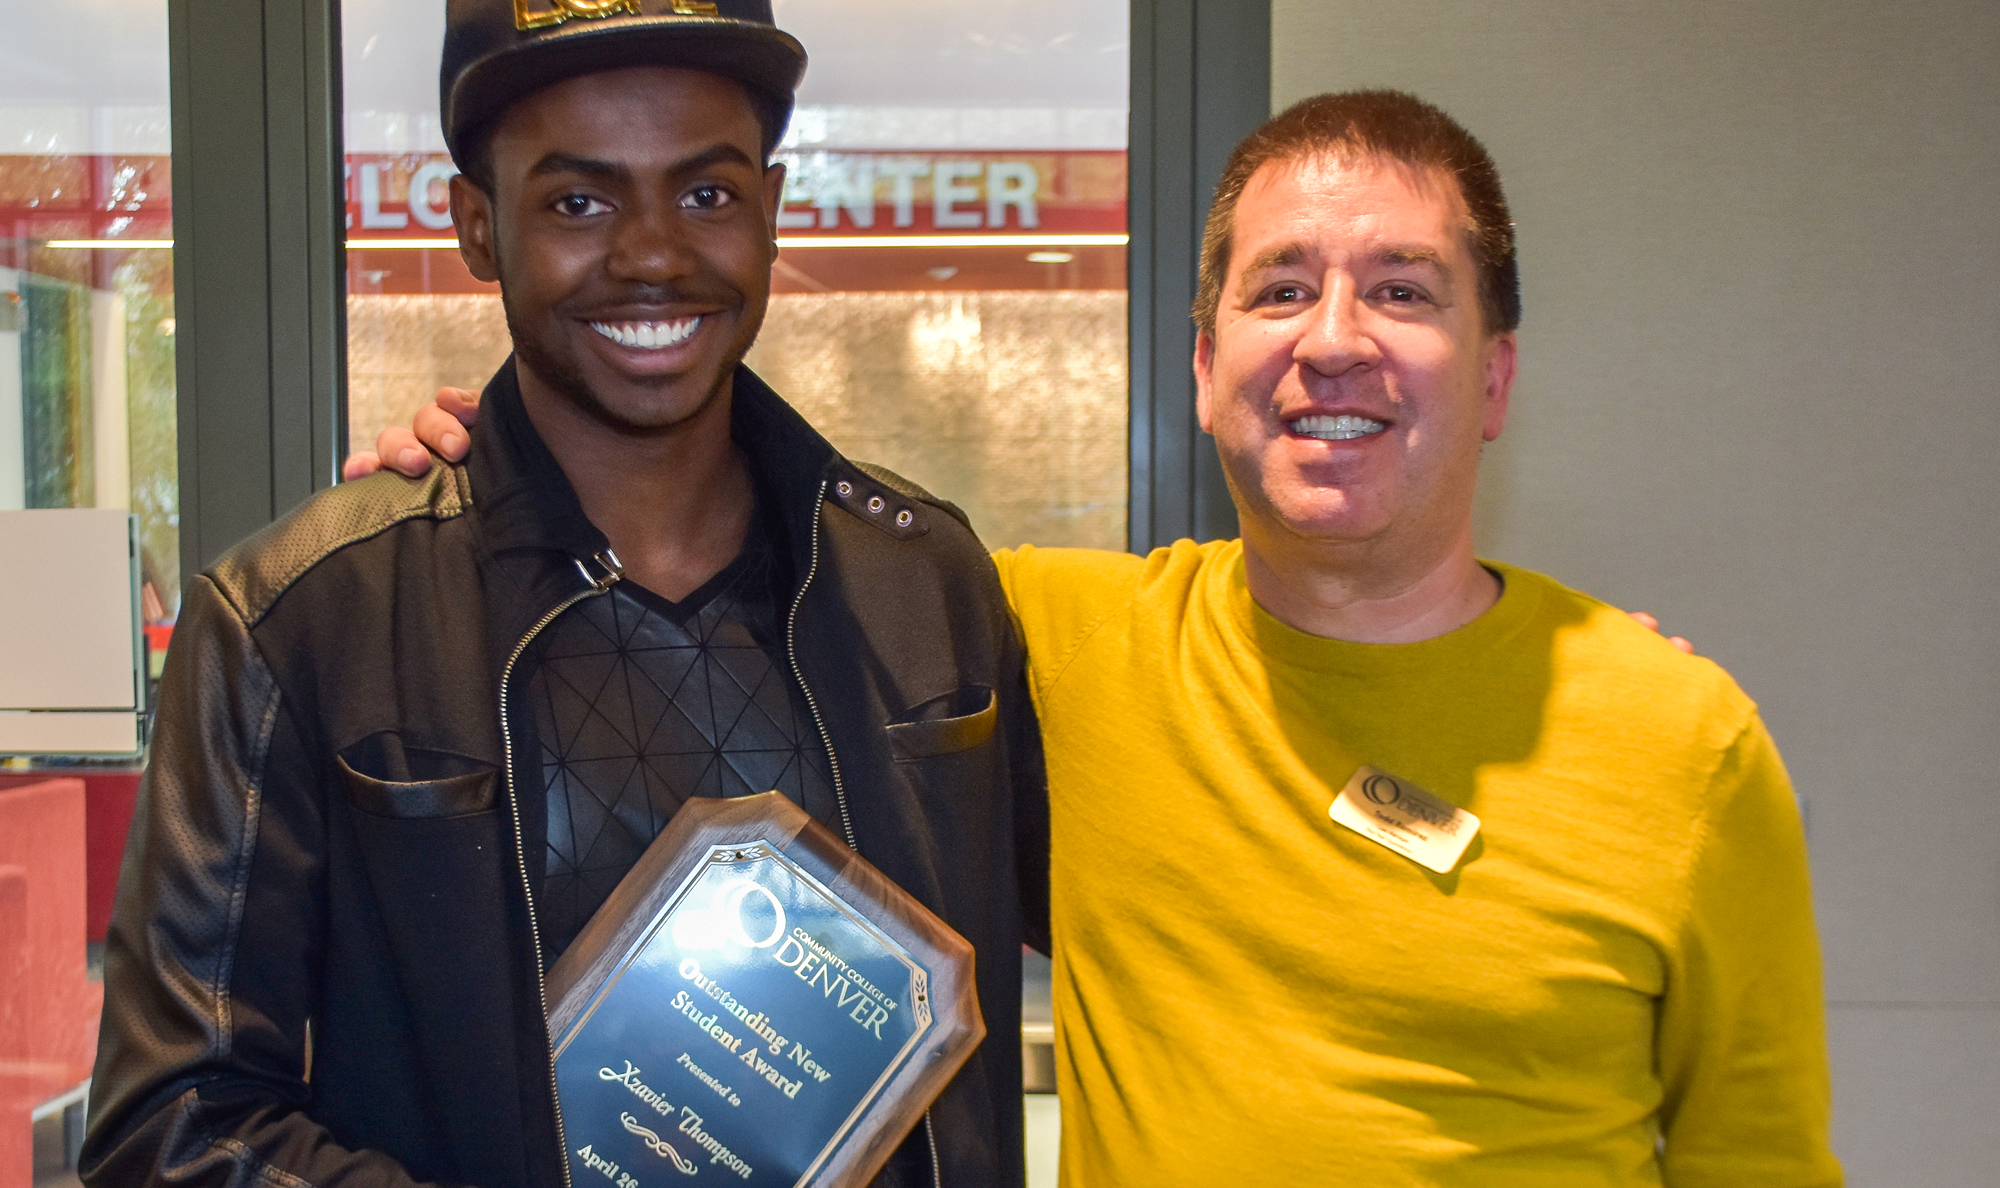 two men smiling, one holding an award